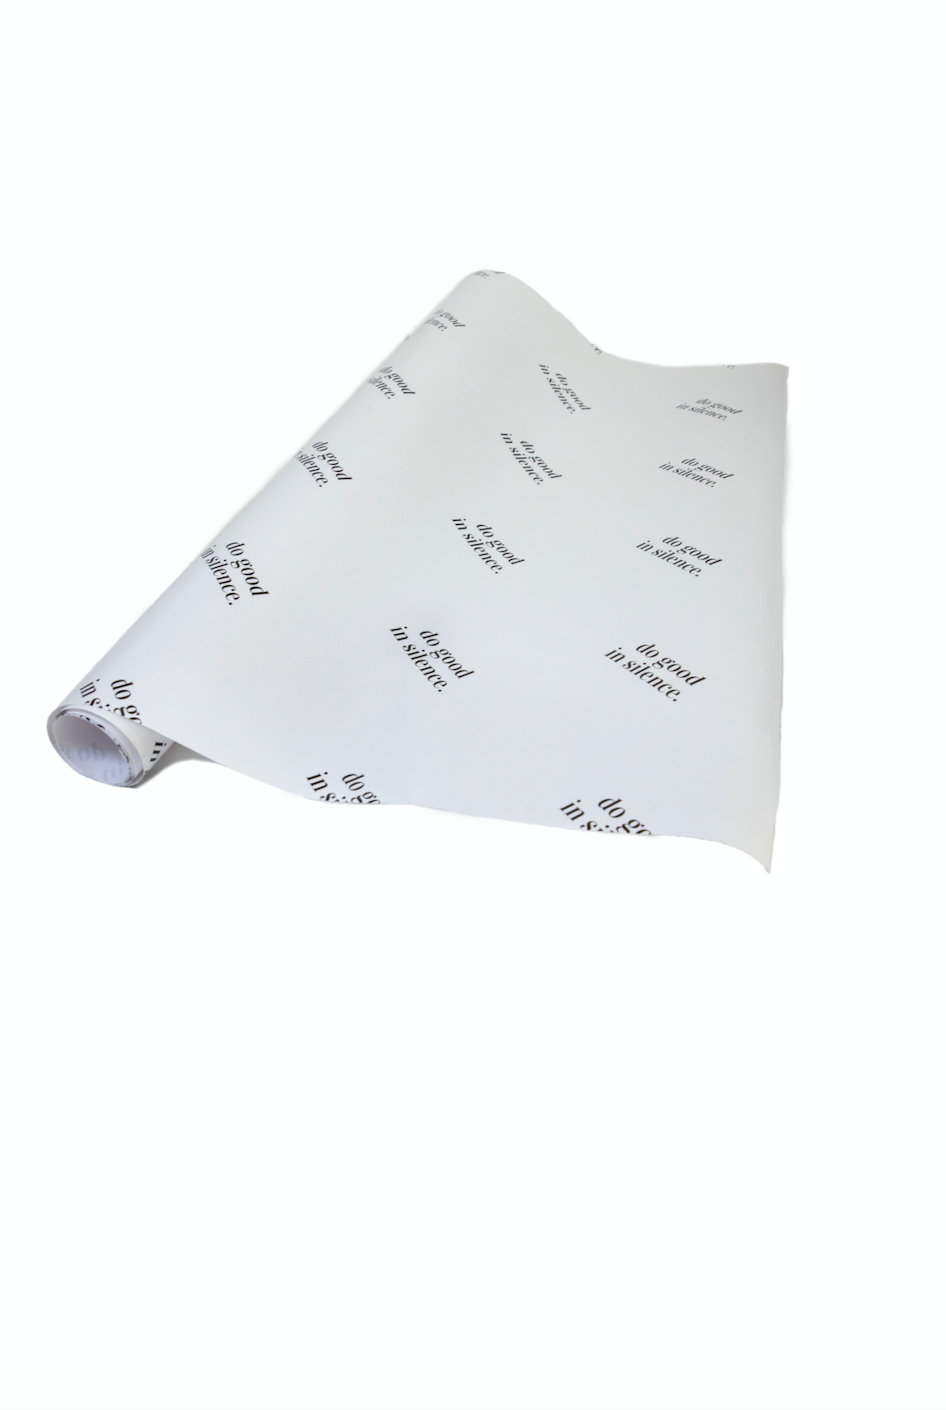 do good in silence.® wrapping paper - black and white glossy (6feet)